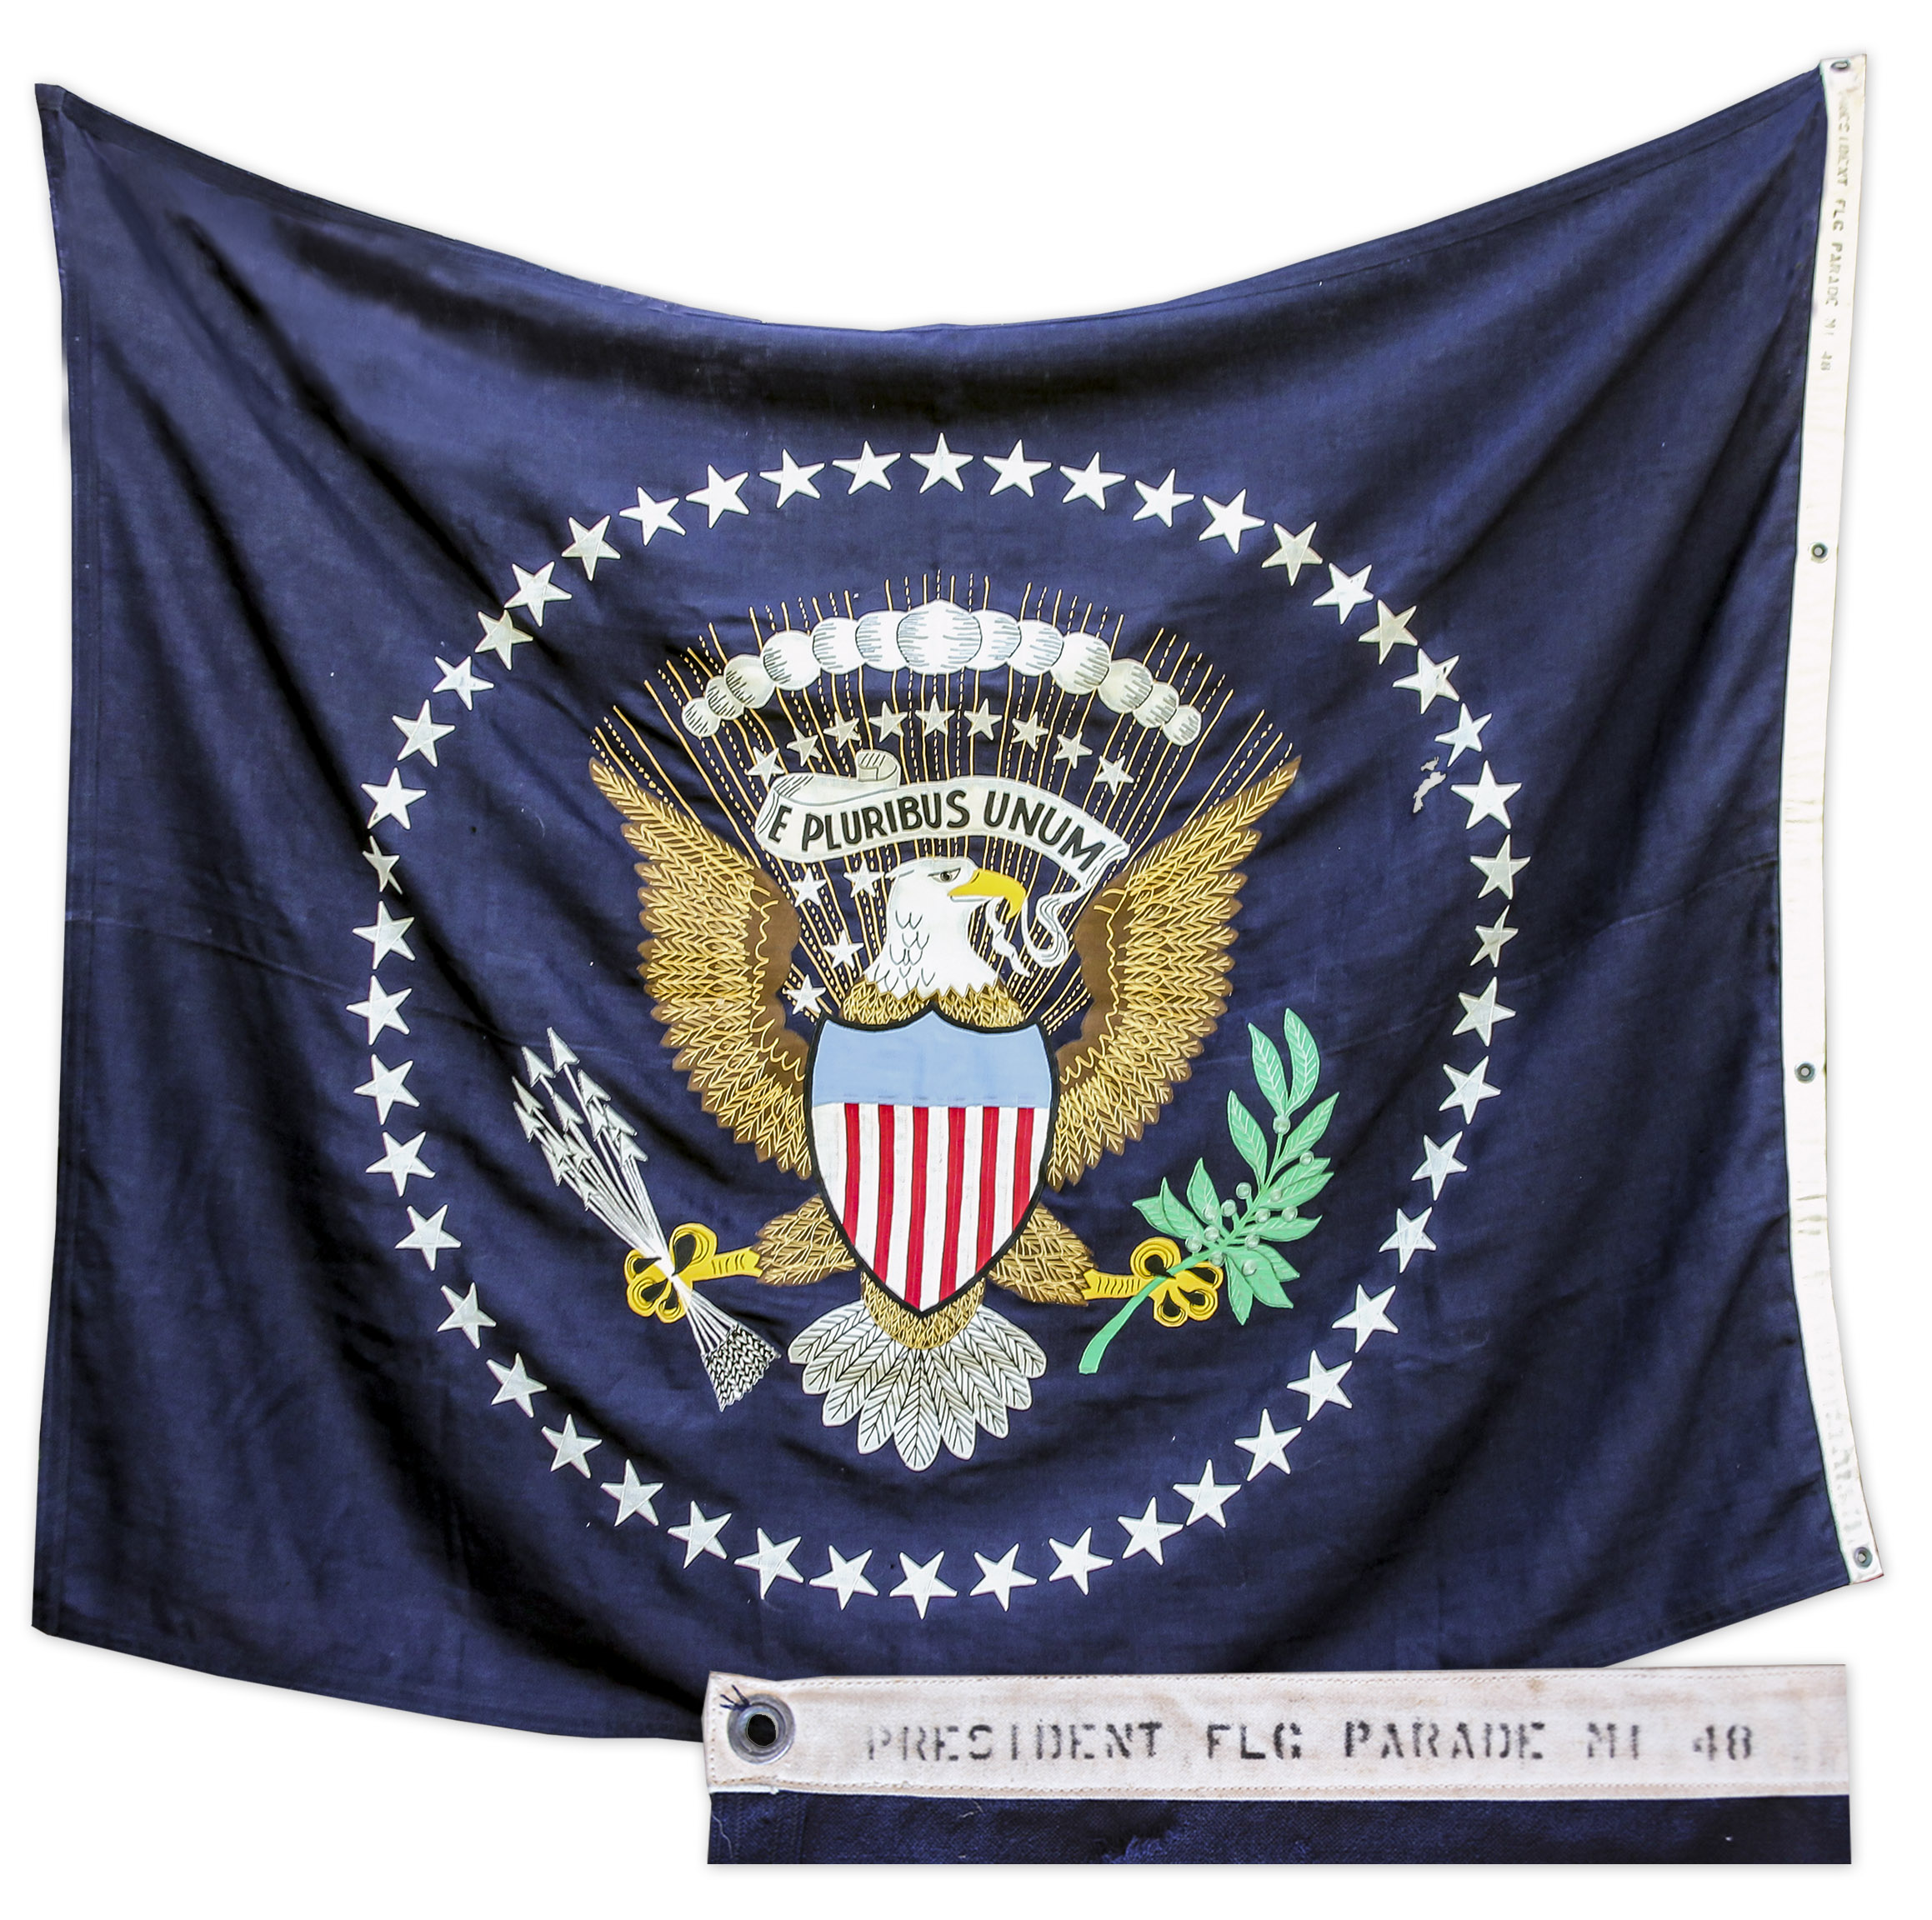 Harry Truman Memorabilia Presidential Flag From the Truman Administration Used for Presidential Parades in 1948 -- Grand Cloth Flag in Full Color Measures 75'' x 59''